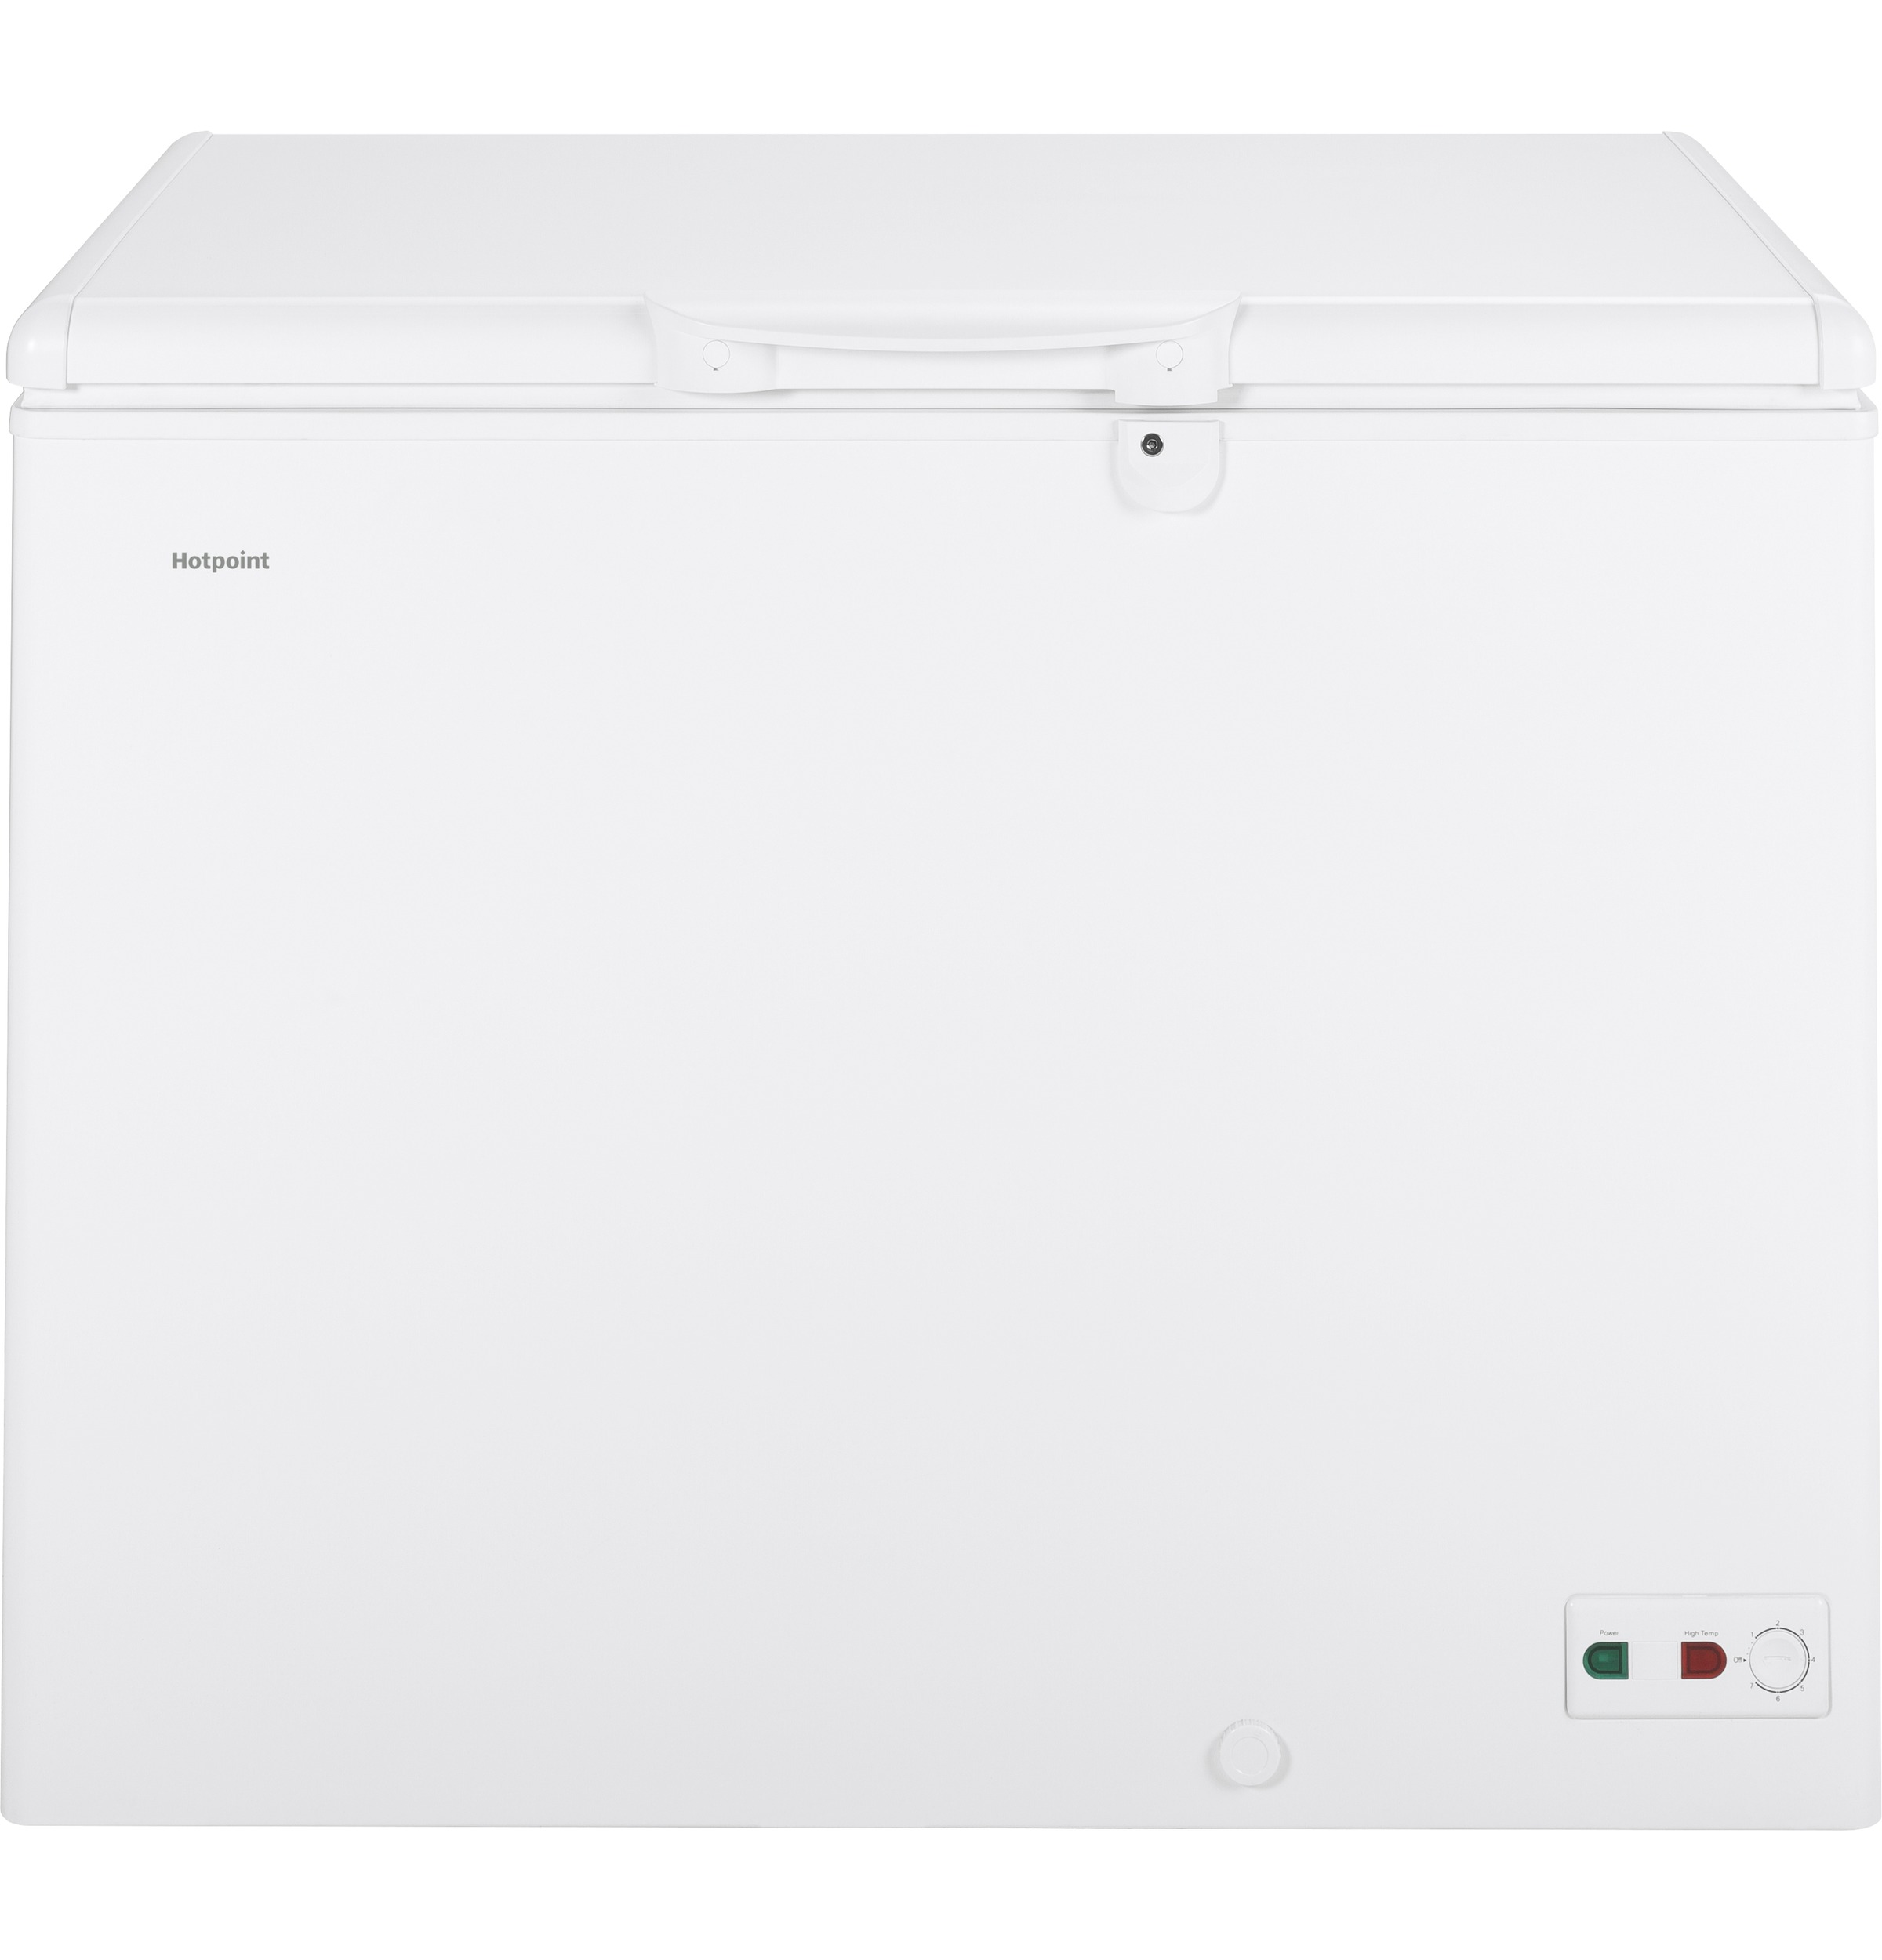 Hotpoint Hotpoint 9.4 Cu. Ft. Manual Defrost Chest Freezer